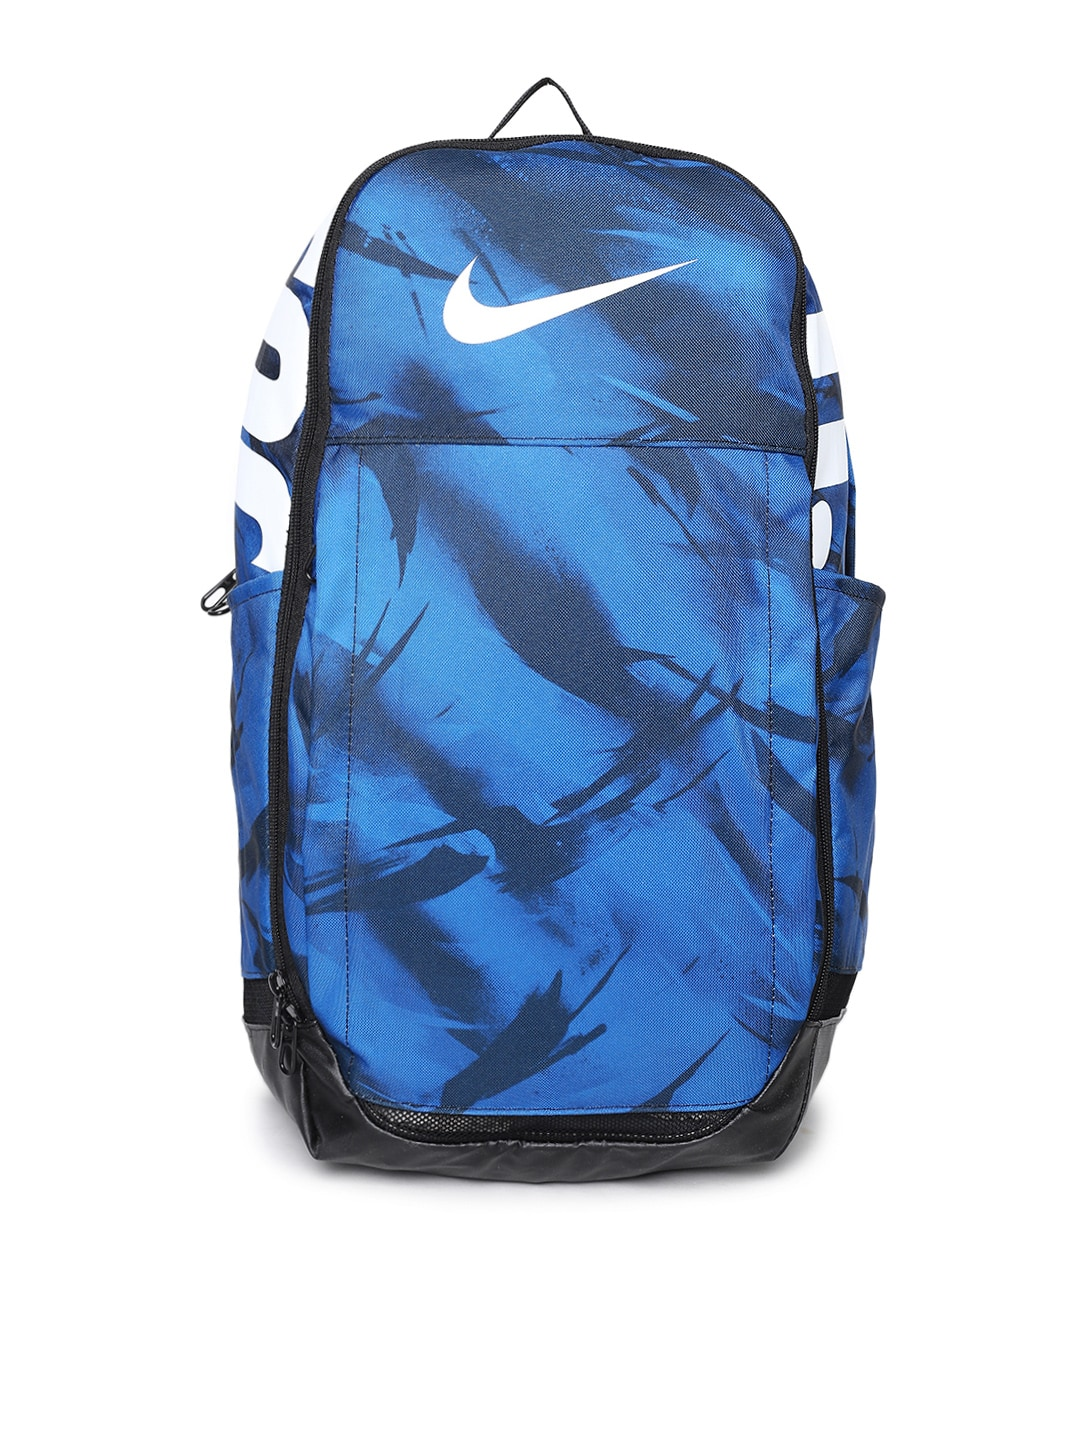 4762d4ab3756c Nike Bags Tracksuits Backpacks - Buy Nike Bags Tracksuits Backpacks online  in India